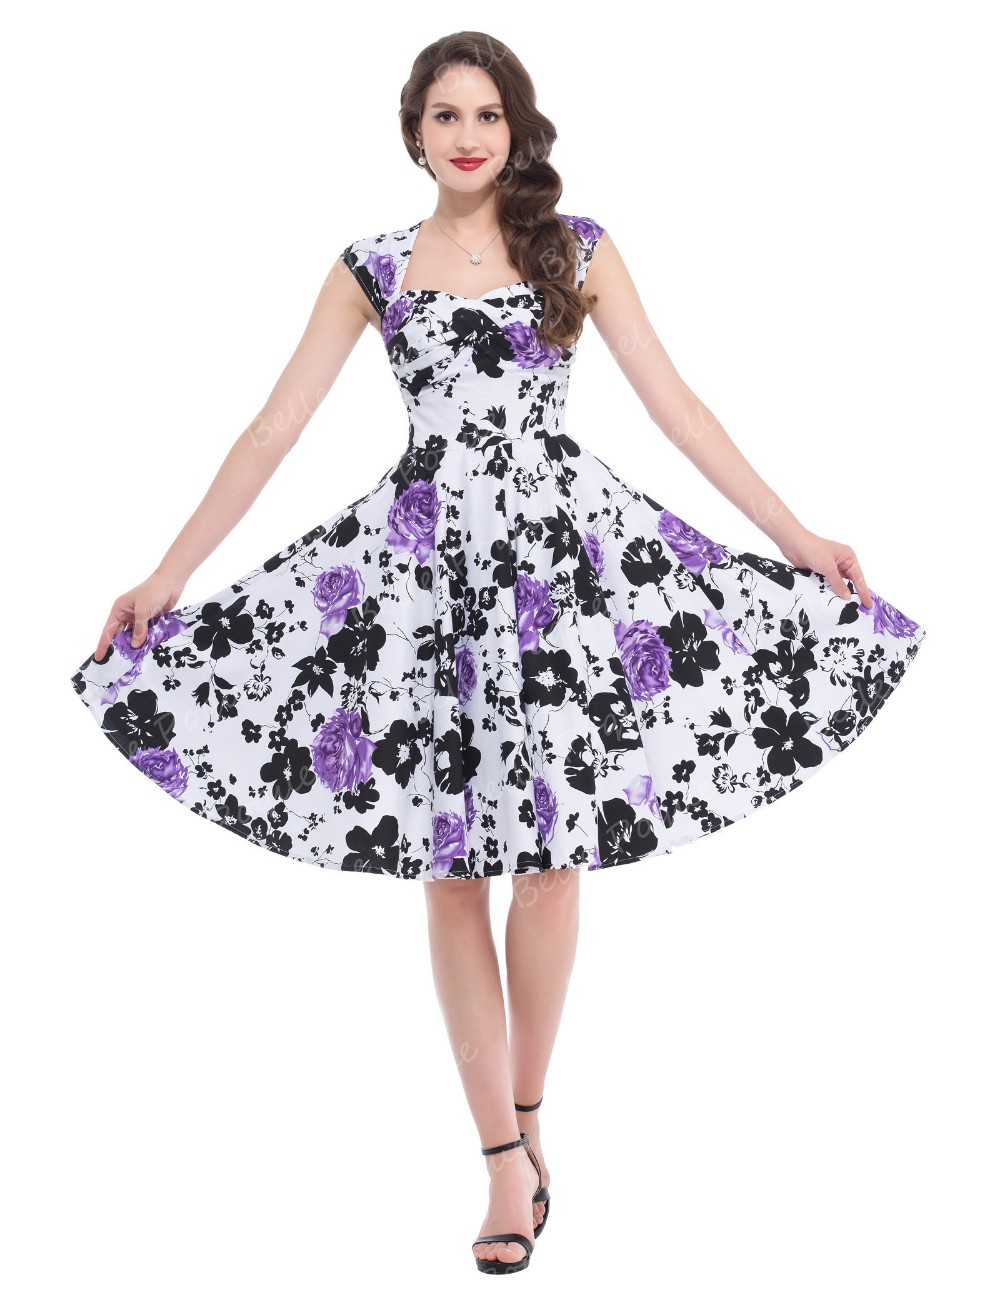 Belle Poque Stock Sleeveless Hollowed Back Cotton Retro Vintage Party Dress BP000024-1